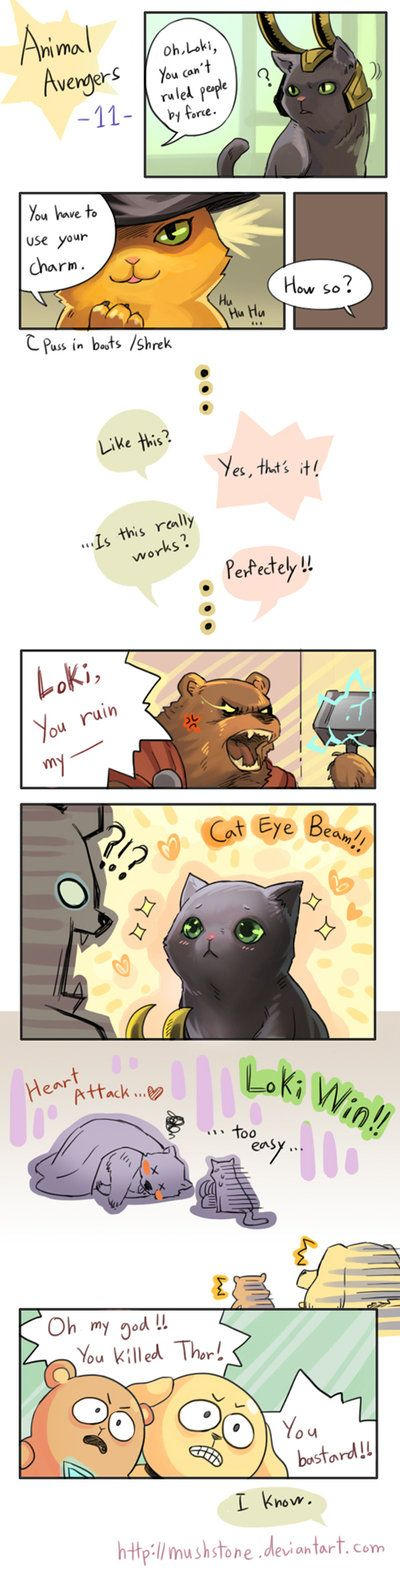 Animal Avengers 11 by Mushstone on deviantART